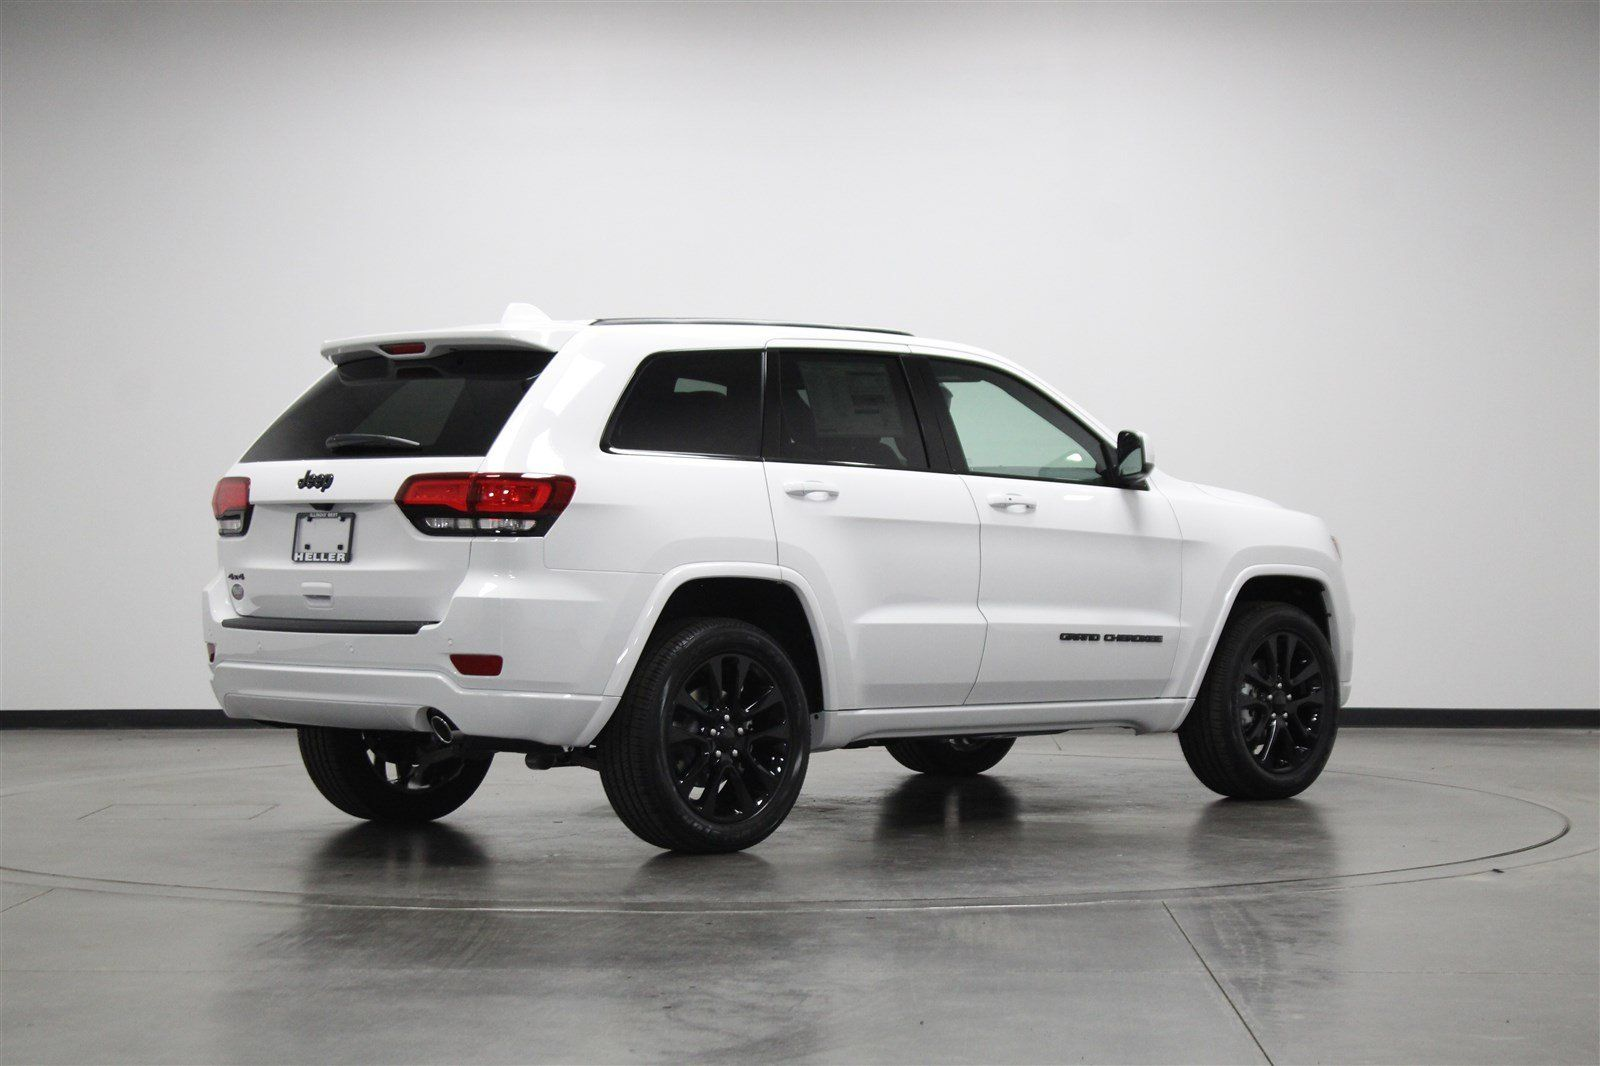 2019 Jeep Grand Cherokee Altitude 4x4 White White Jeep White